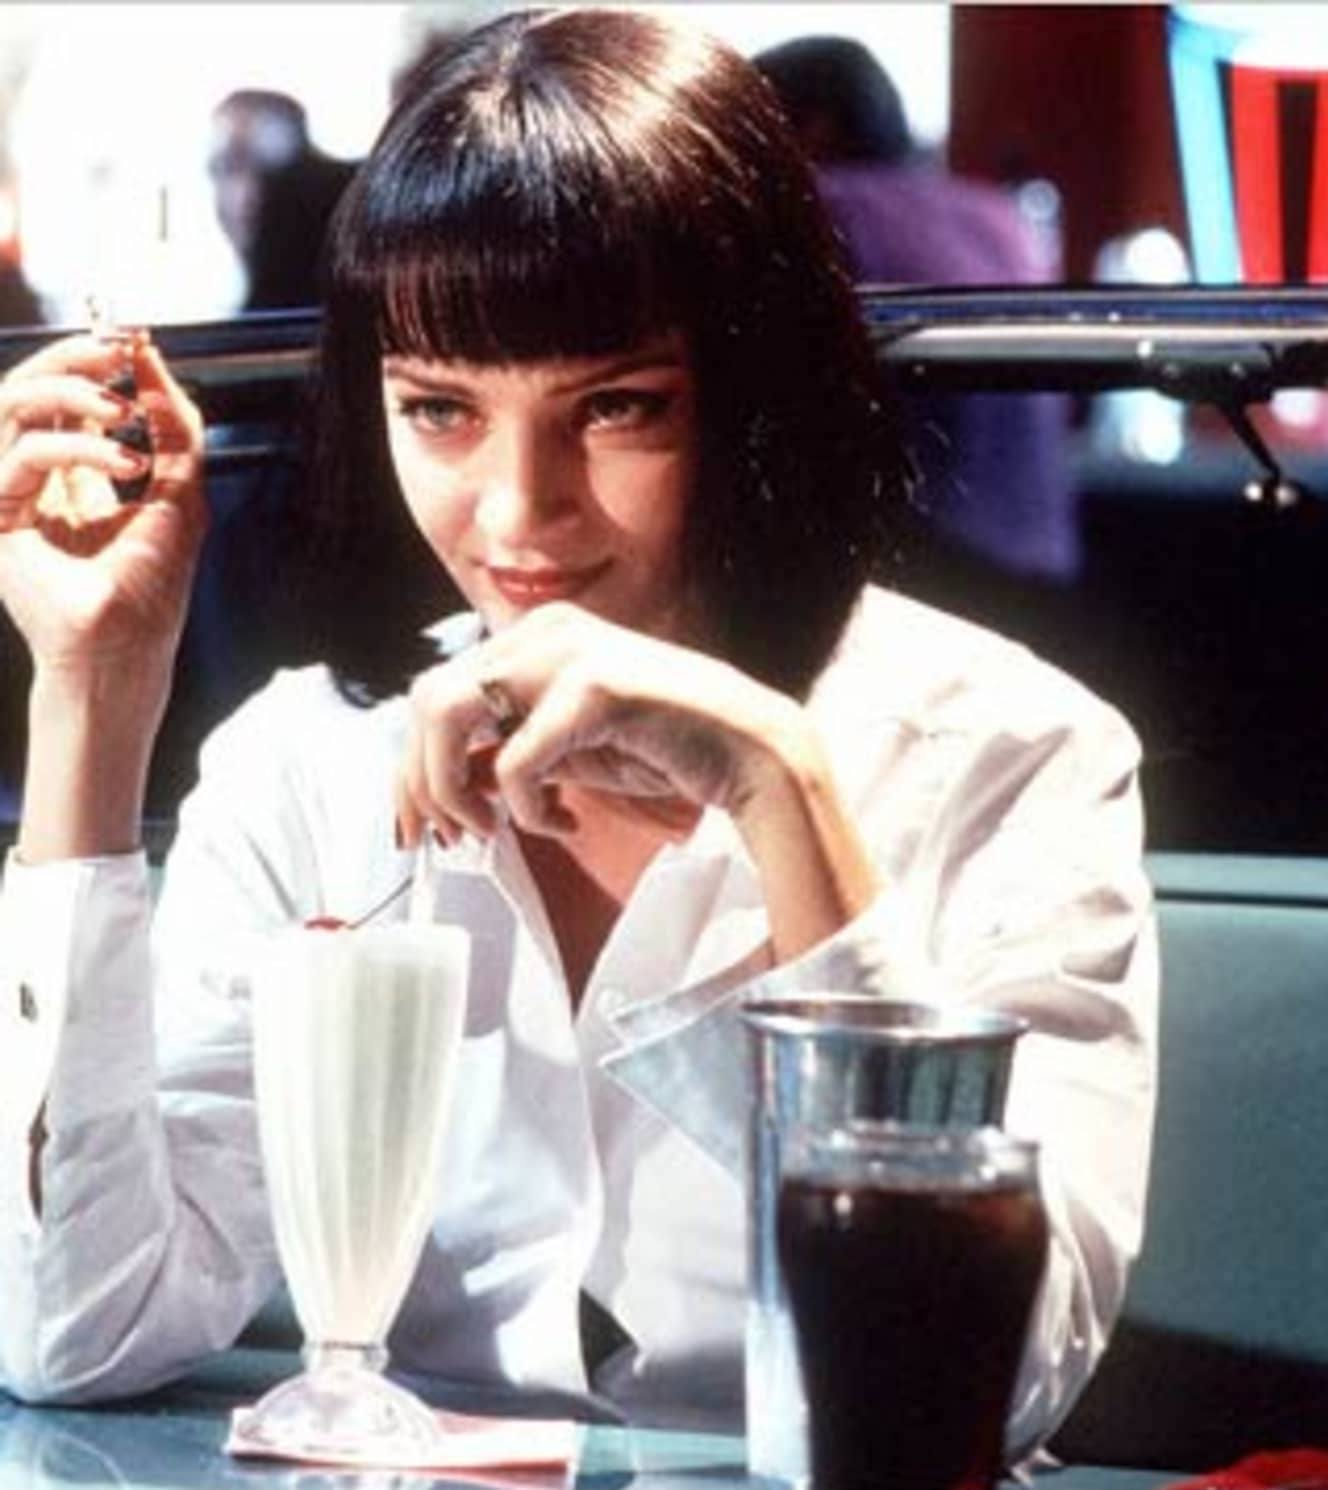 610ab919995451851b7bd2fca5bb7a043b05accf 1 25 Things You Never Knew About Pulp Fiction